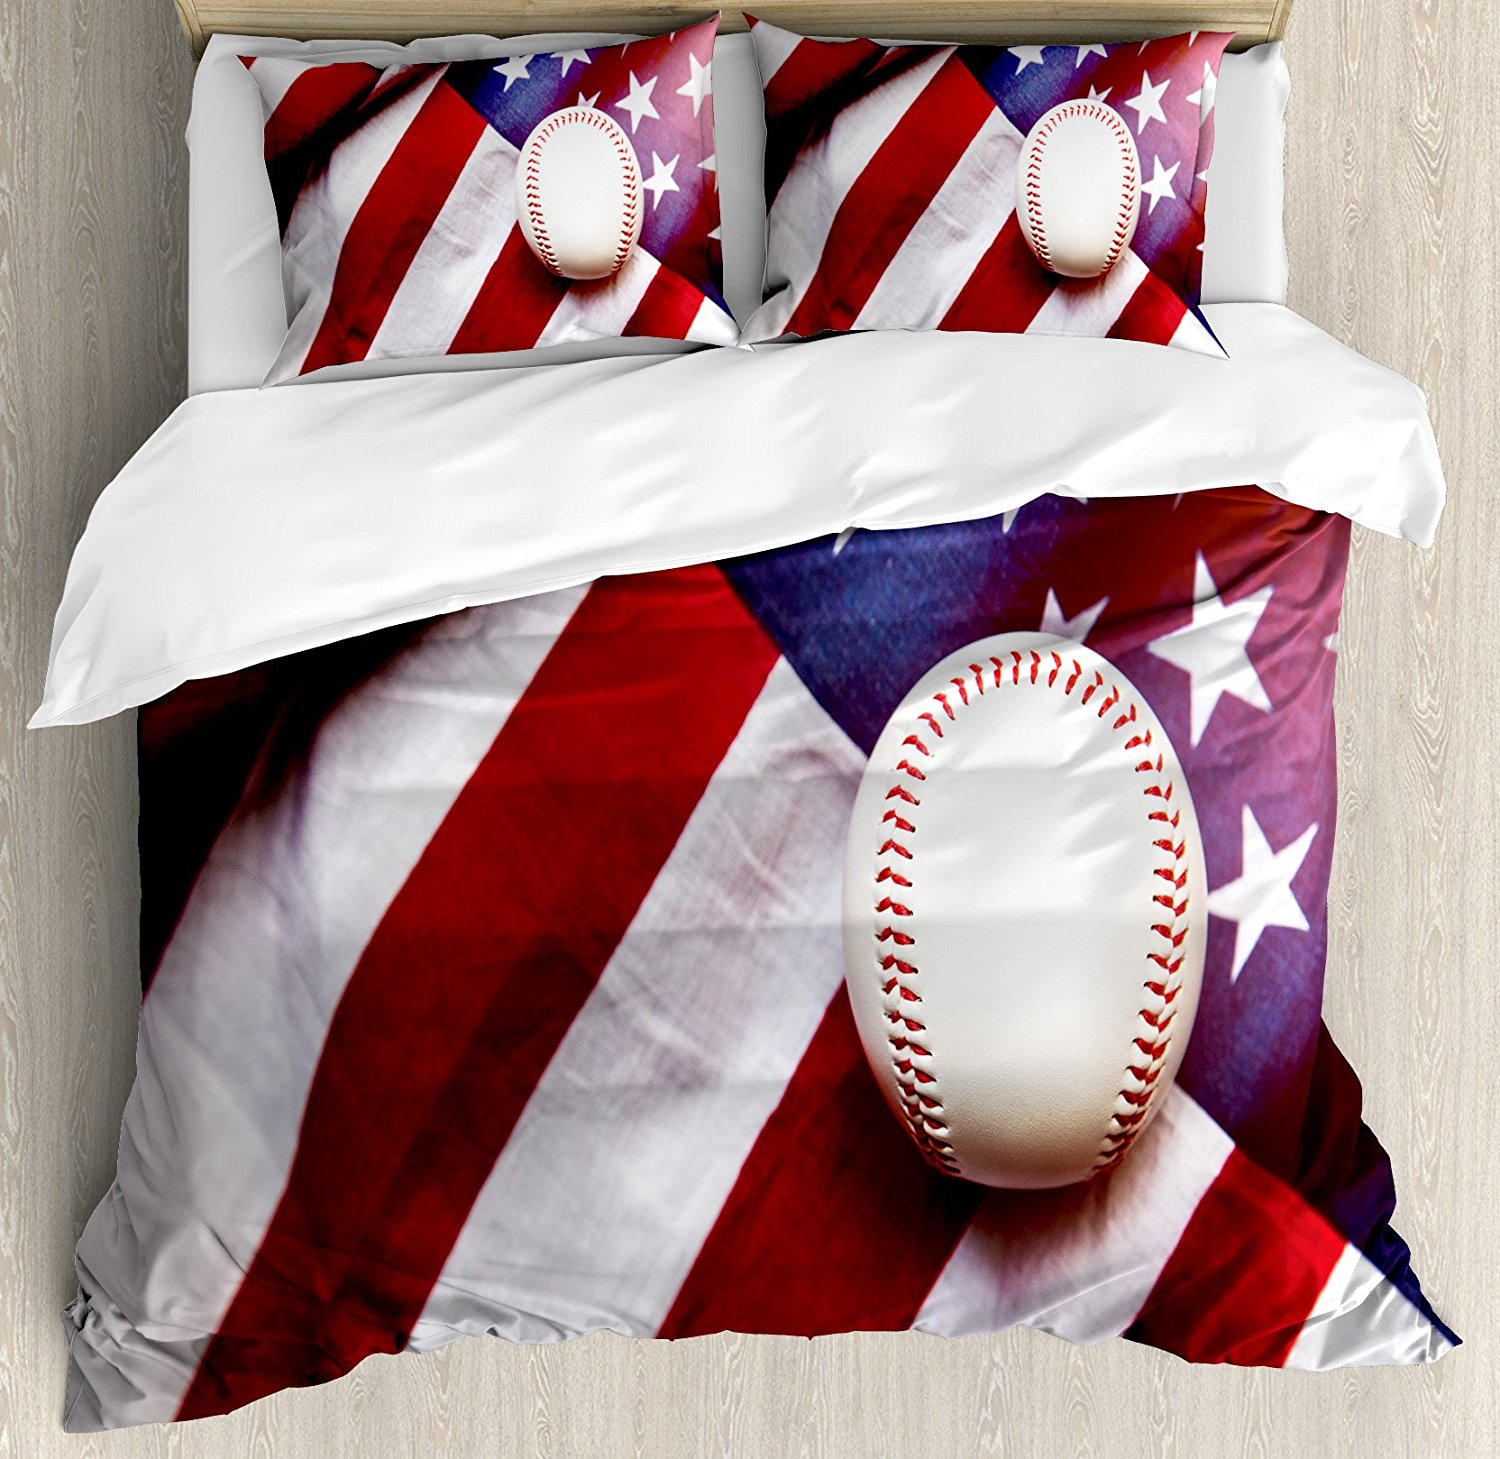 bedding reveal kids has red dream soccer awesome rooms pin room toddler navy sports bed